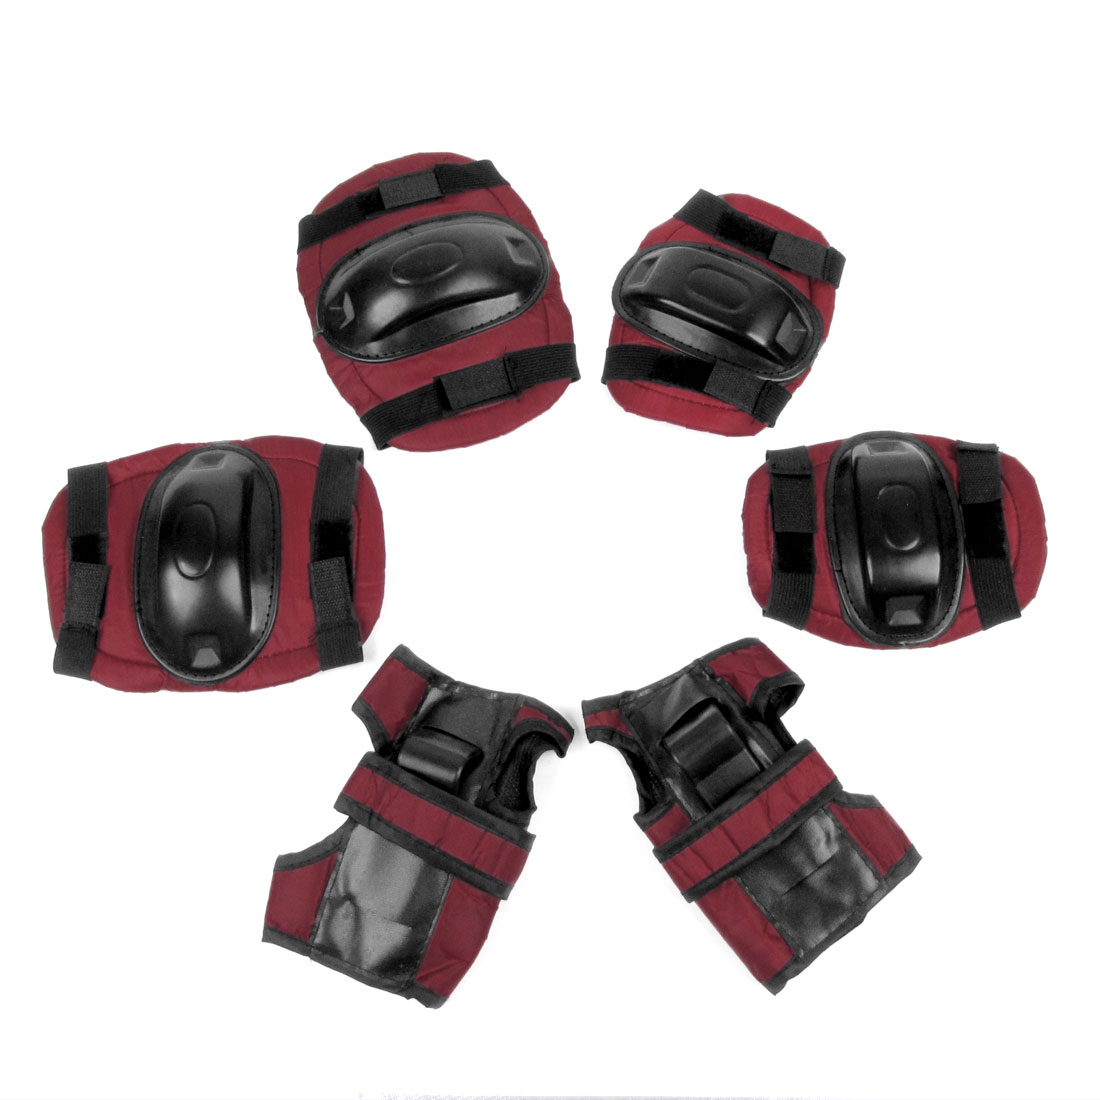 3 Pairs Burgundy Black Elastic Band Wrist Palm Elbow Knee Protectors for Kids